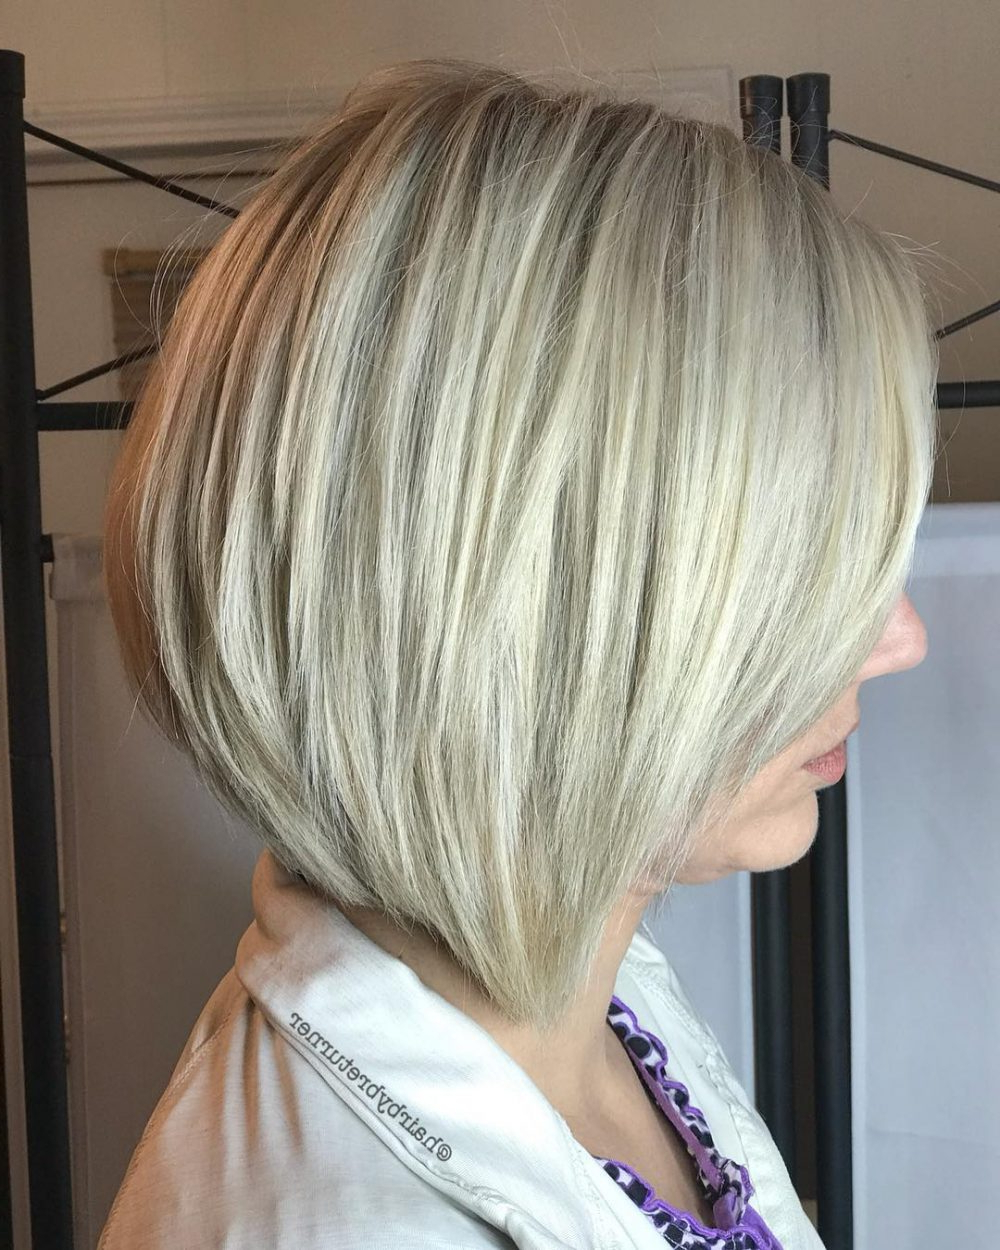 Well Known Medium Haircuts For Women In Their 30s For 42 Sexiest Short Hairstyles For Women Over 40 In (View 13 of 20)